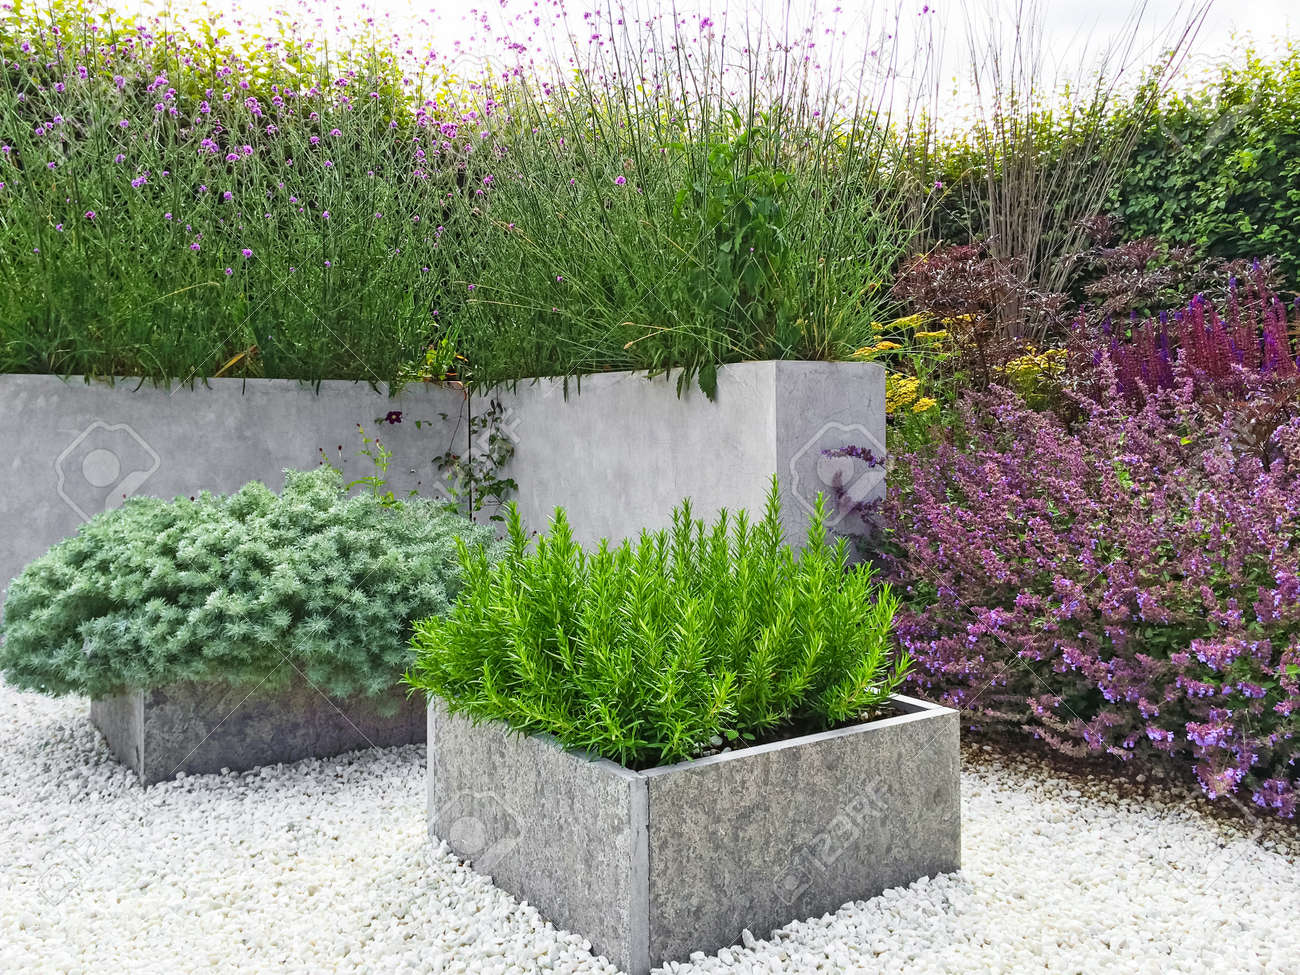 Beautiful garden with blooming plants, concrete and stone details. Contemporary design. - 53121475